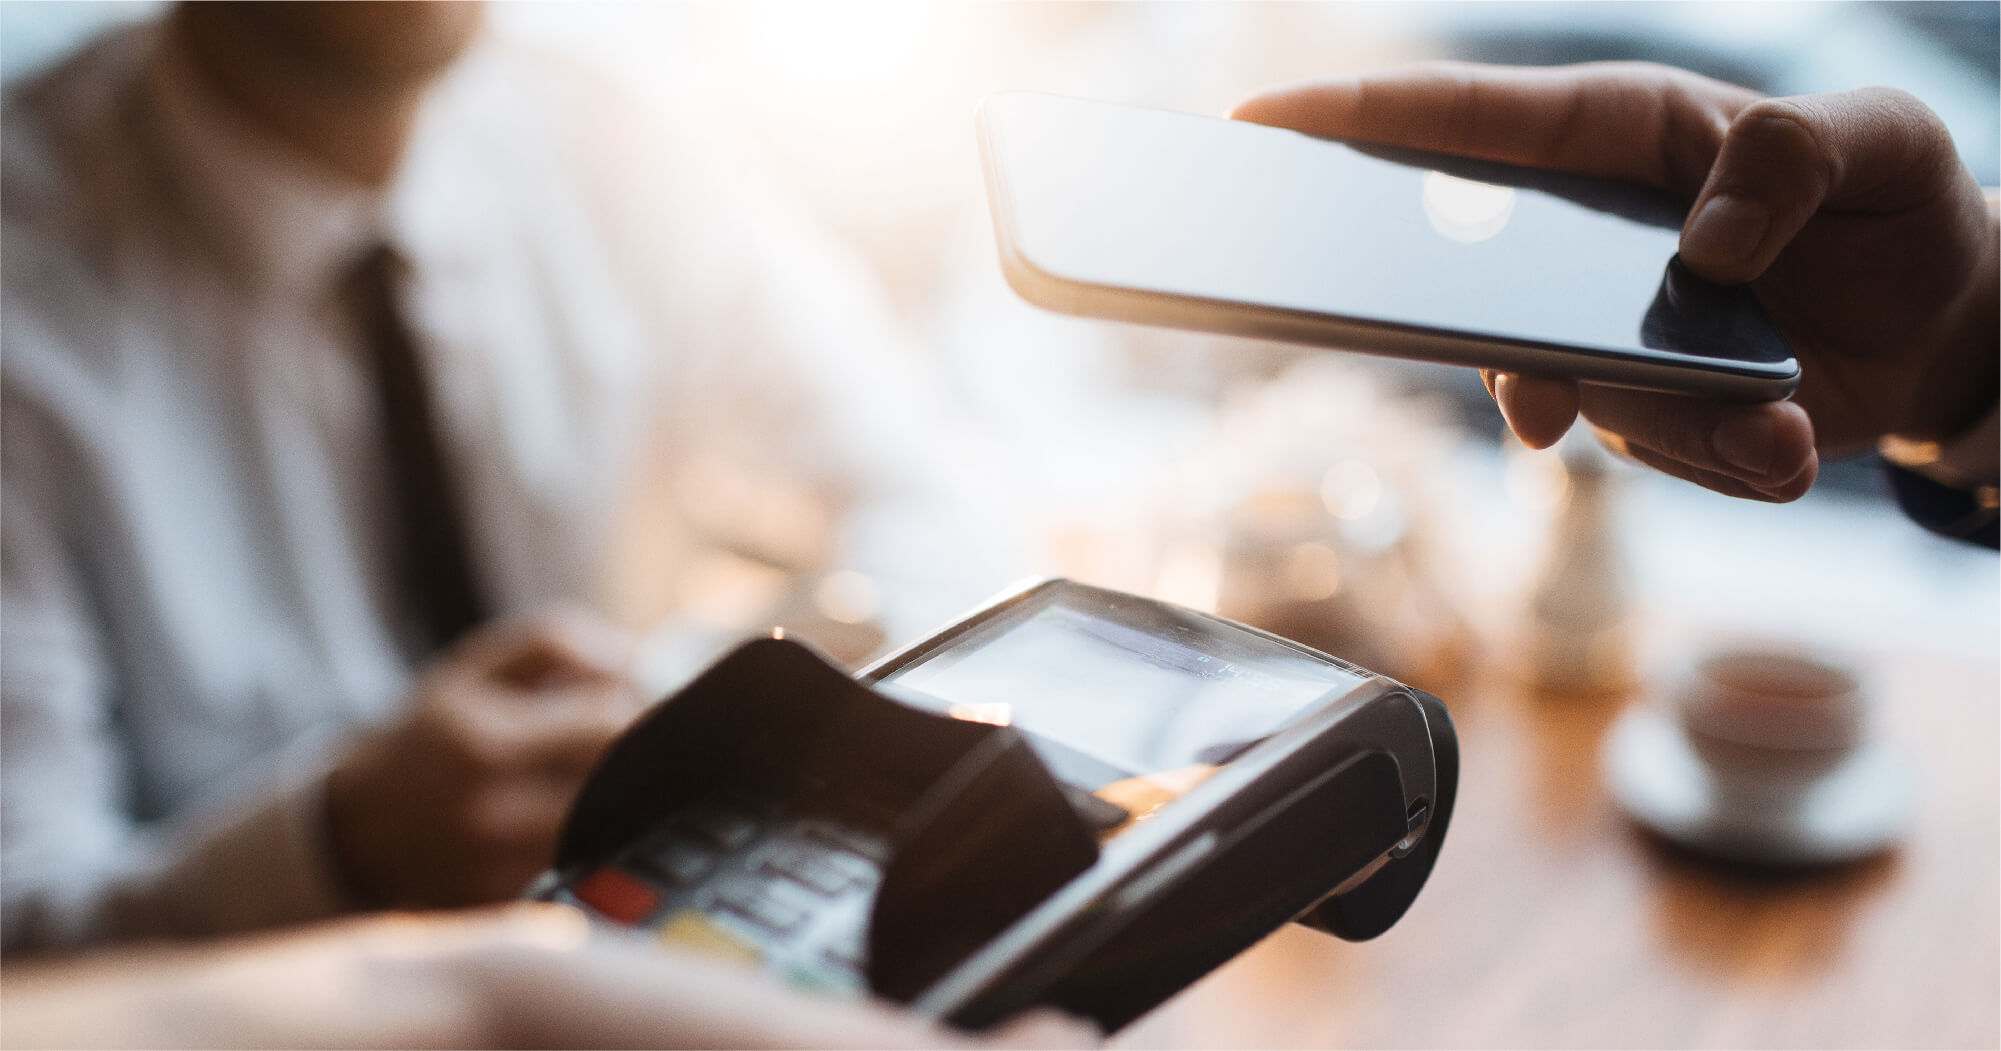 mobile payments using a mobile wallet -SingSaver